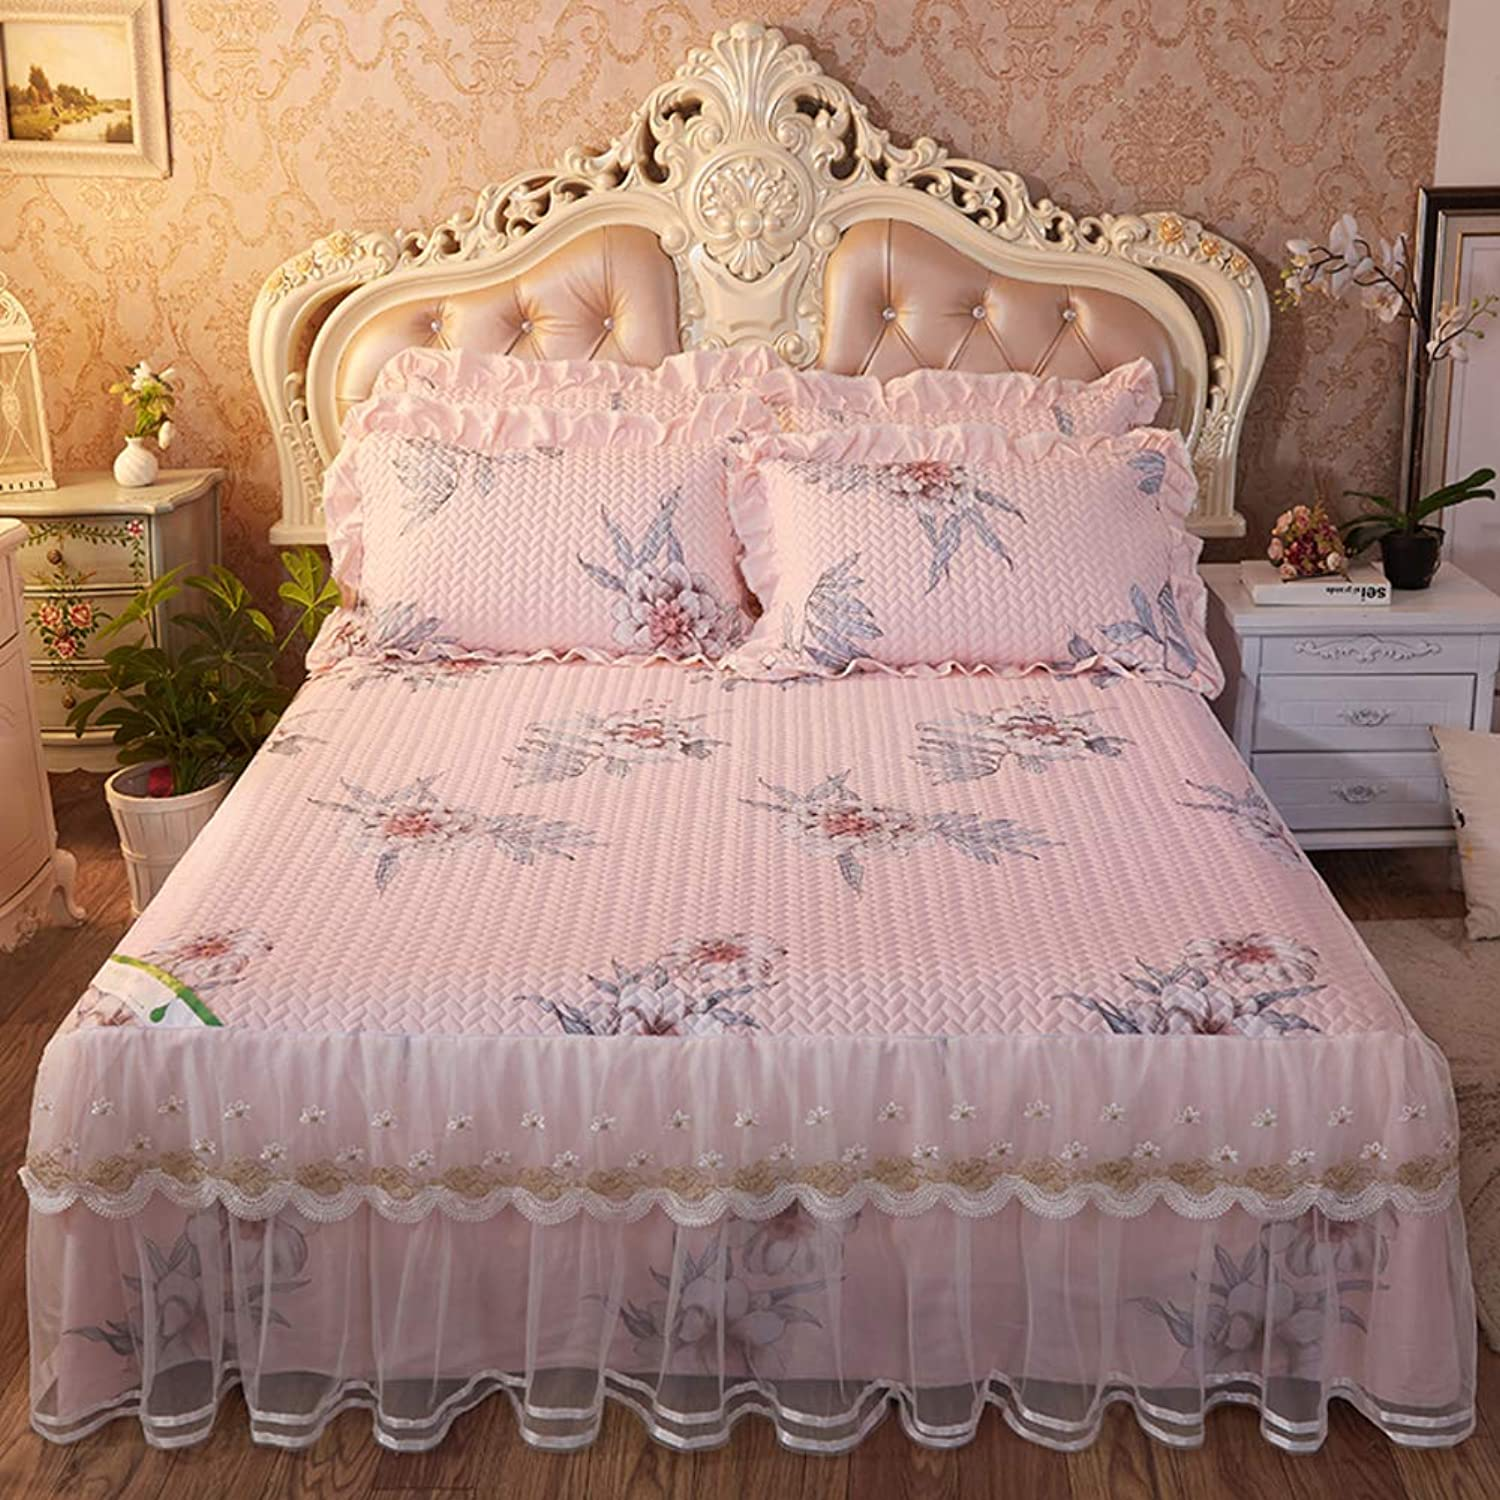 Lace Thicked Bed Skirt,Bamboo Quilted Single Piece Plus Cotton Bed Skirt with Split Corners Ultra-Soft Shrink and Fade Resistant-I 150x200cm(59x79inch)